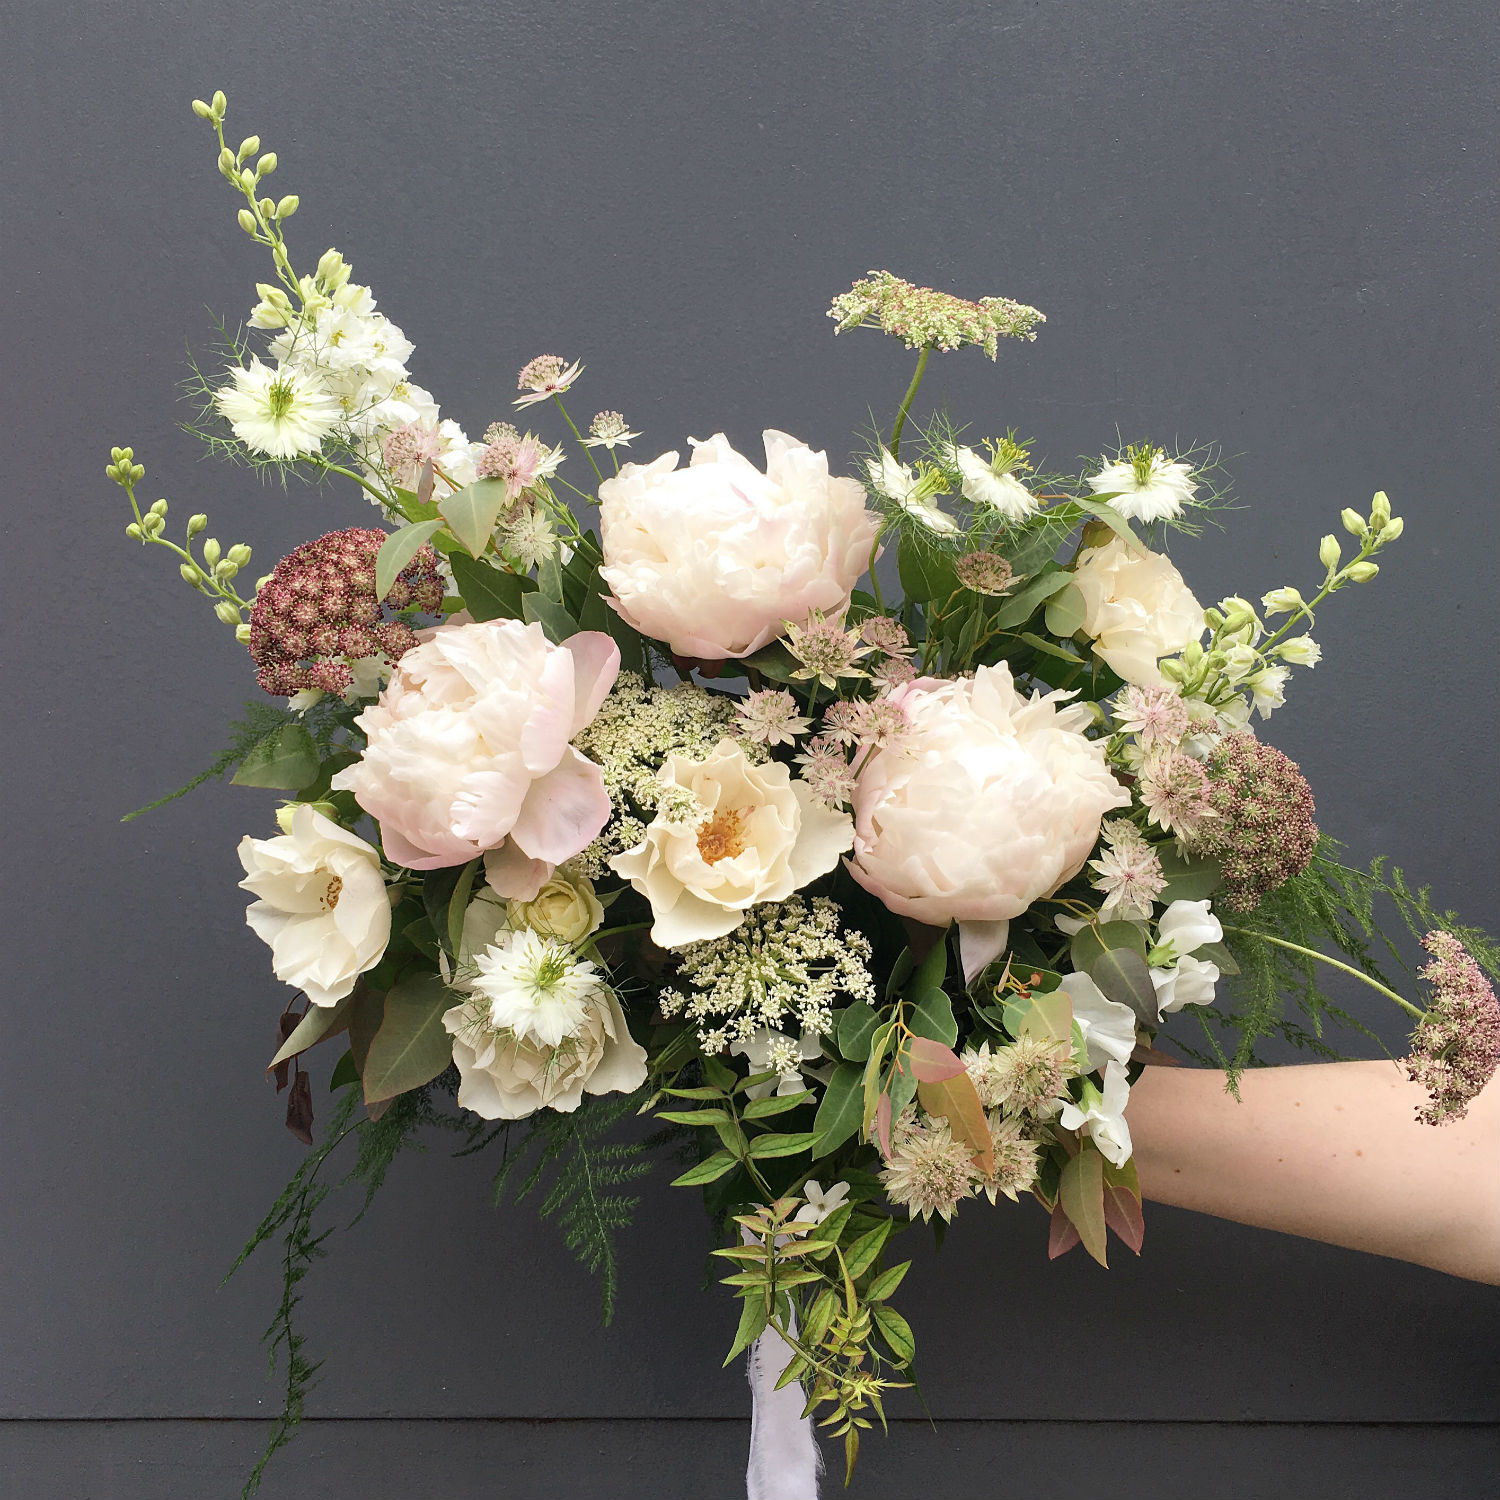 Wedding flowers ideas for your big day contains peonies dacus jasmine english roses astrantia nigella larkspur sweet pea eucalyptus asparagus fern perfect for early summer izmirmasajfo